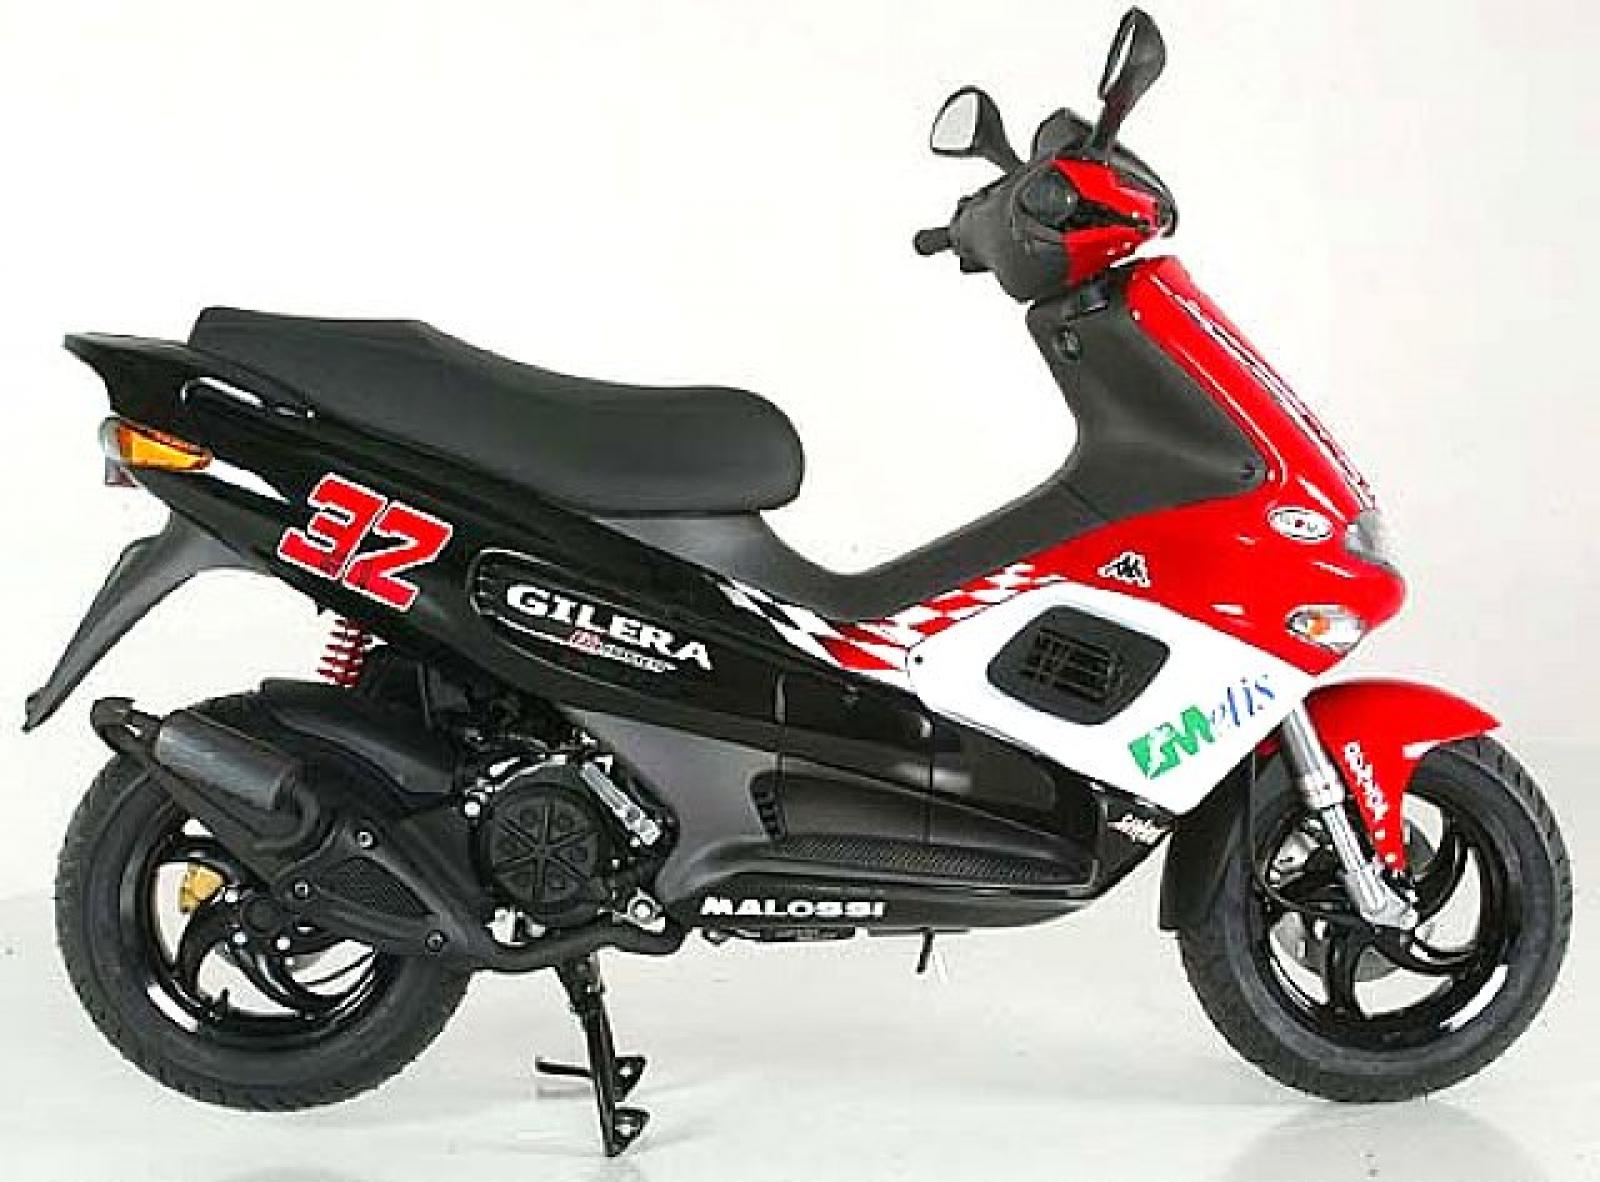 Gilera 50 Runner Racing Replica images #73875